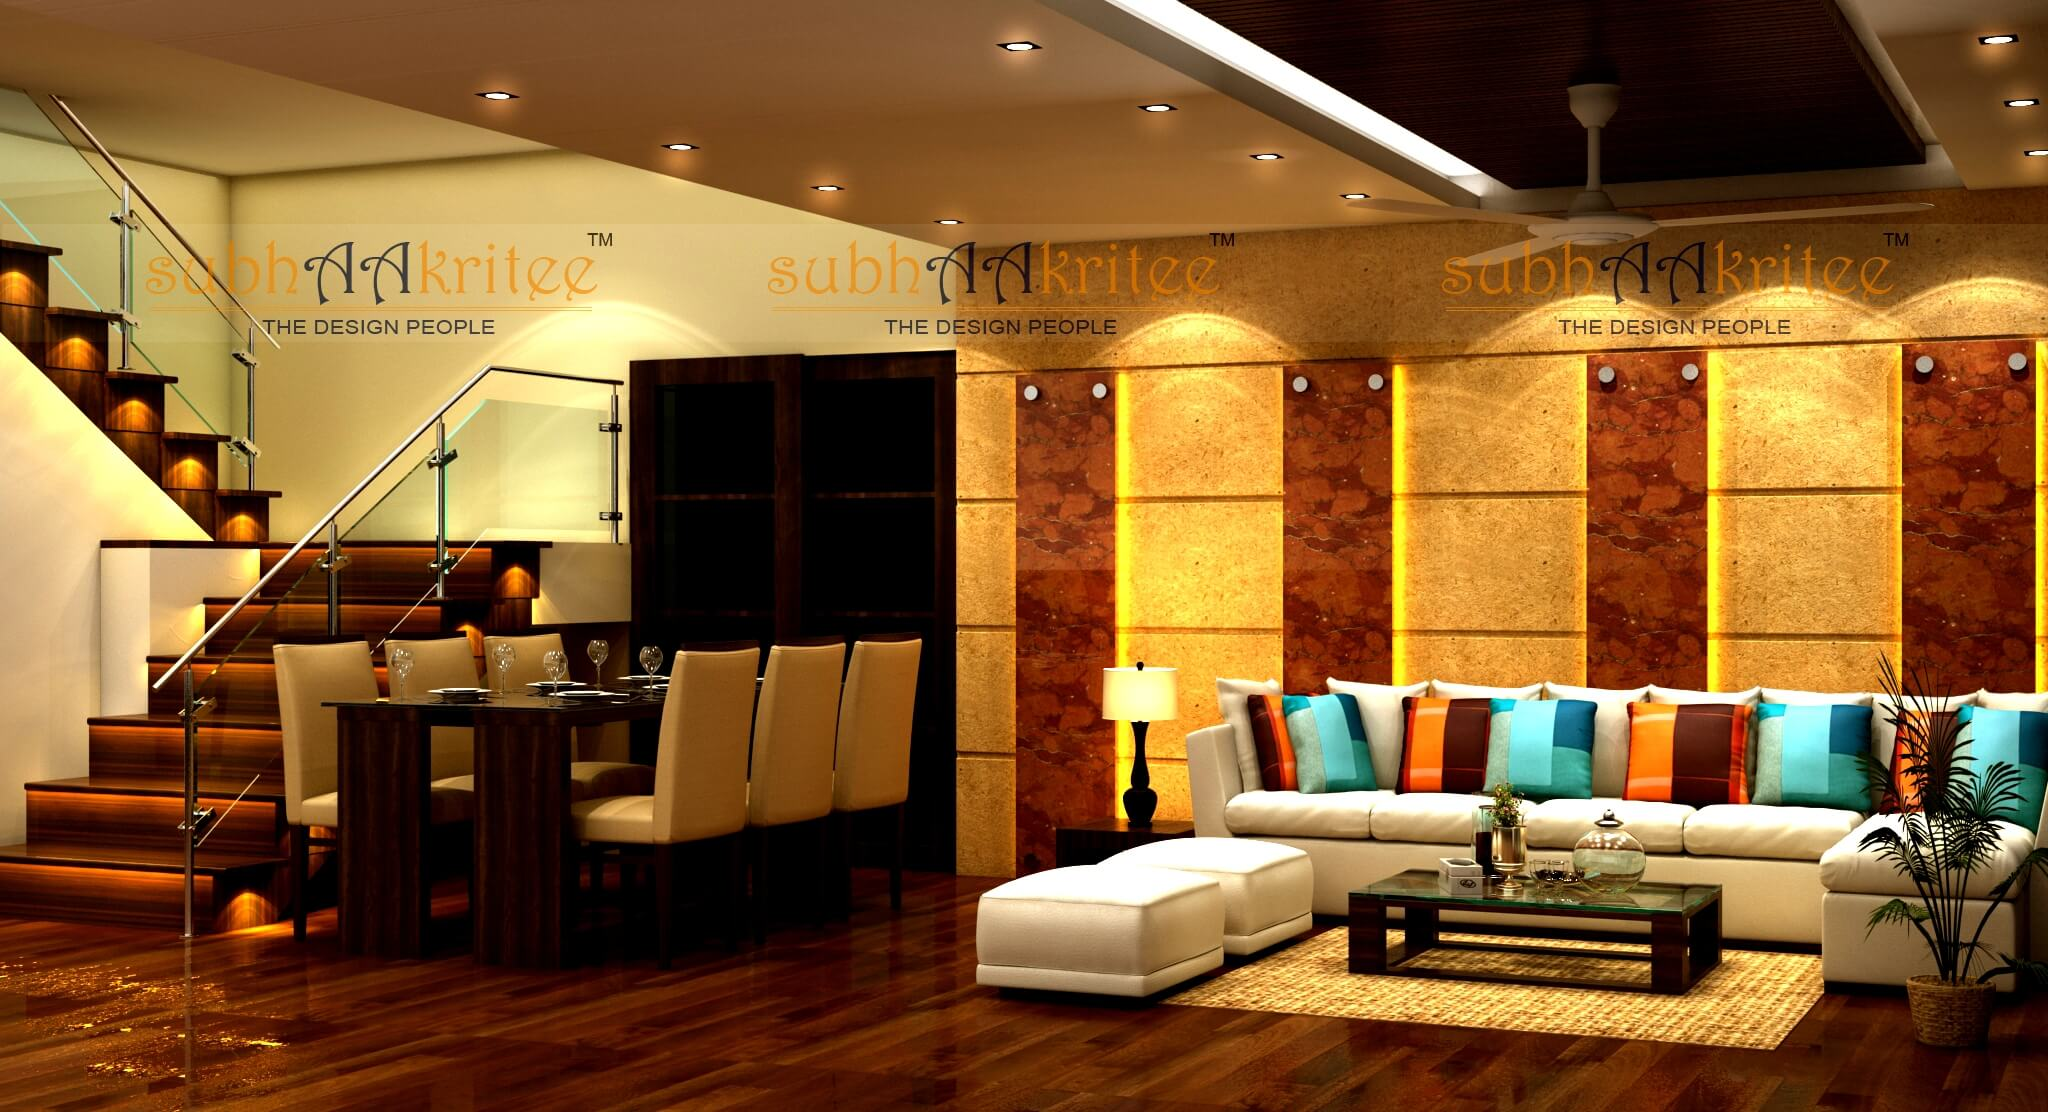 64 interior design jobs kolkata interior designers for Peter s job interior design decoration